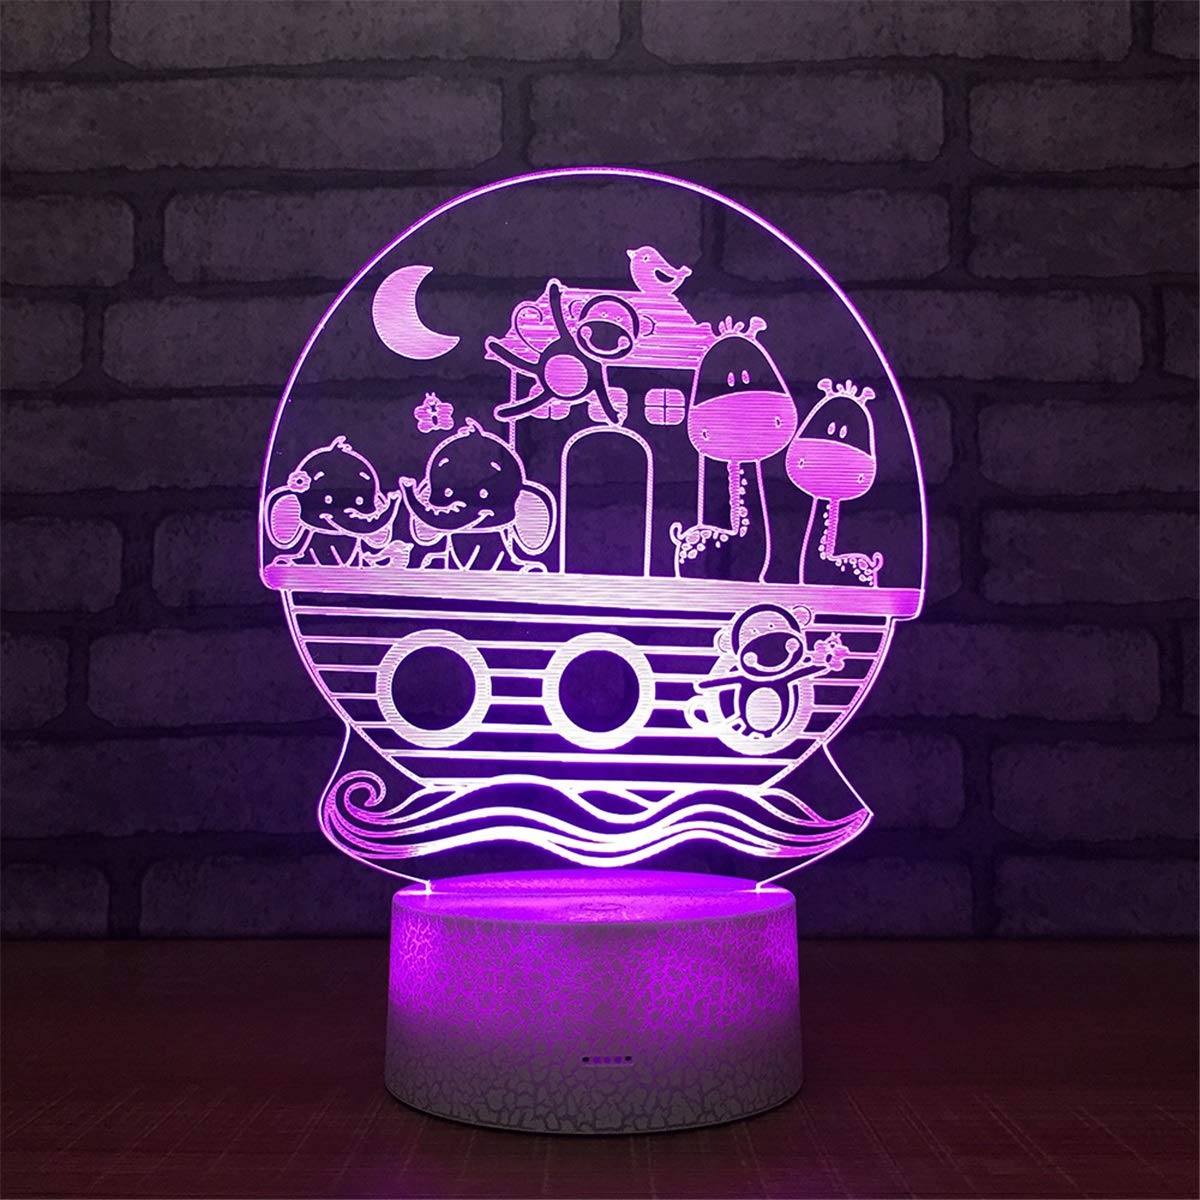 USB Powered Stunning Animal 7 Colors Optical Illusion Night Light Crackle Paint Base Touch Table Desk Lamps 3D Glow LED Lamp Art Sculpture Lights Toy for Kids Gifts